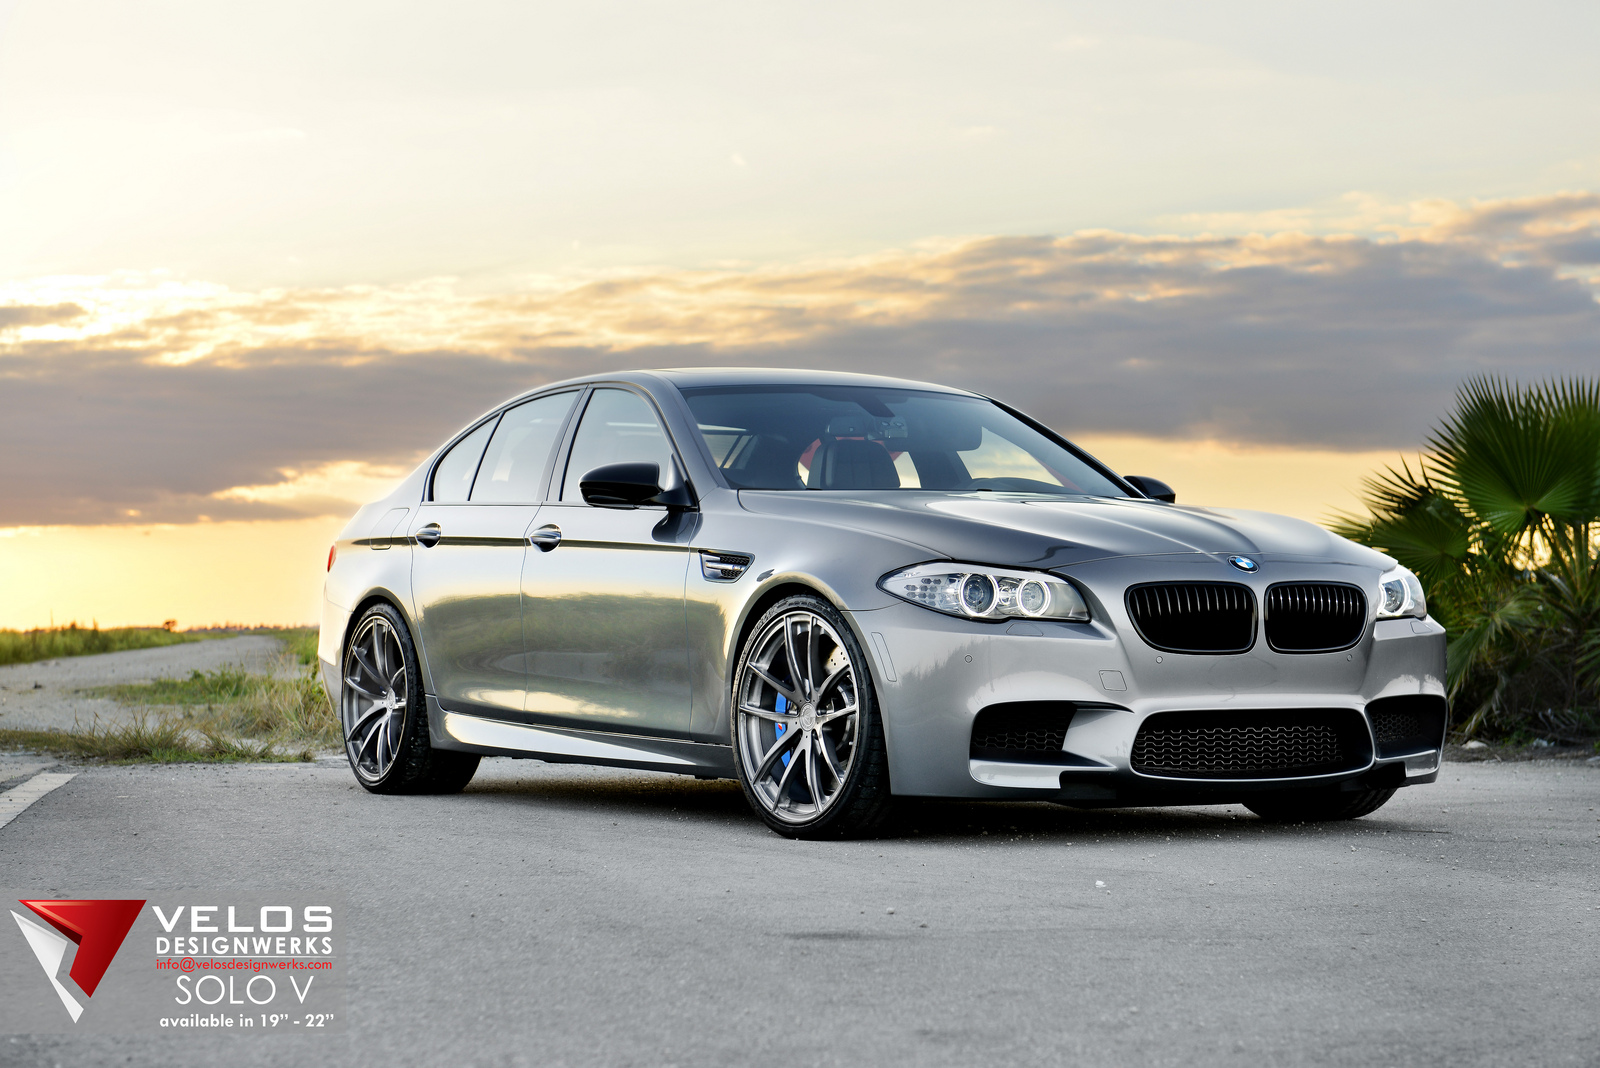 2013 Bmw F10 M5 On Velos Designwerks Solo V Wheels